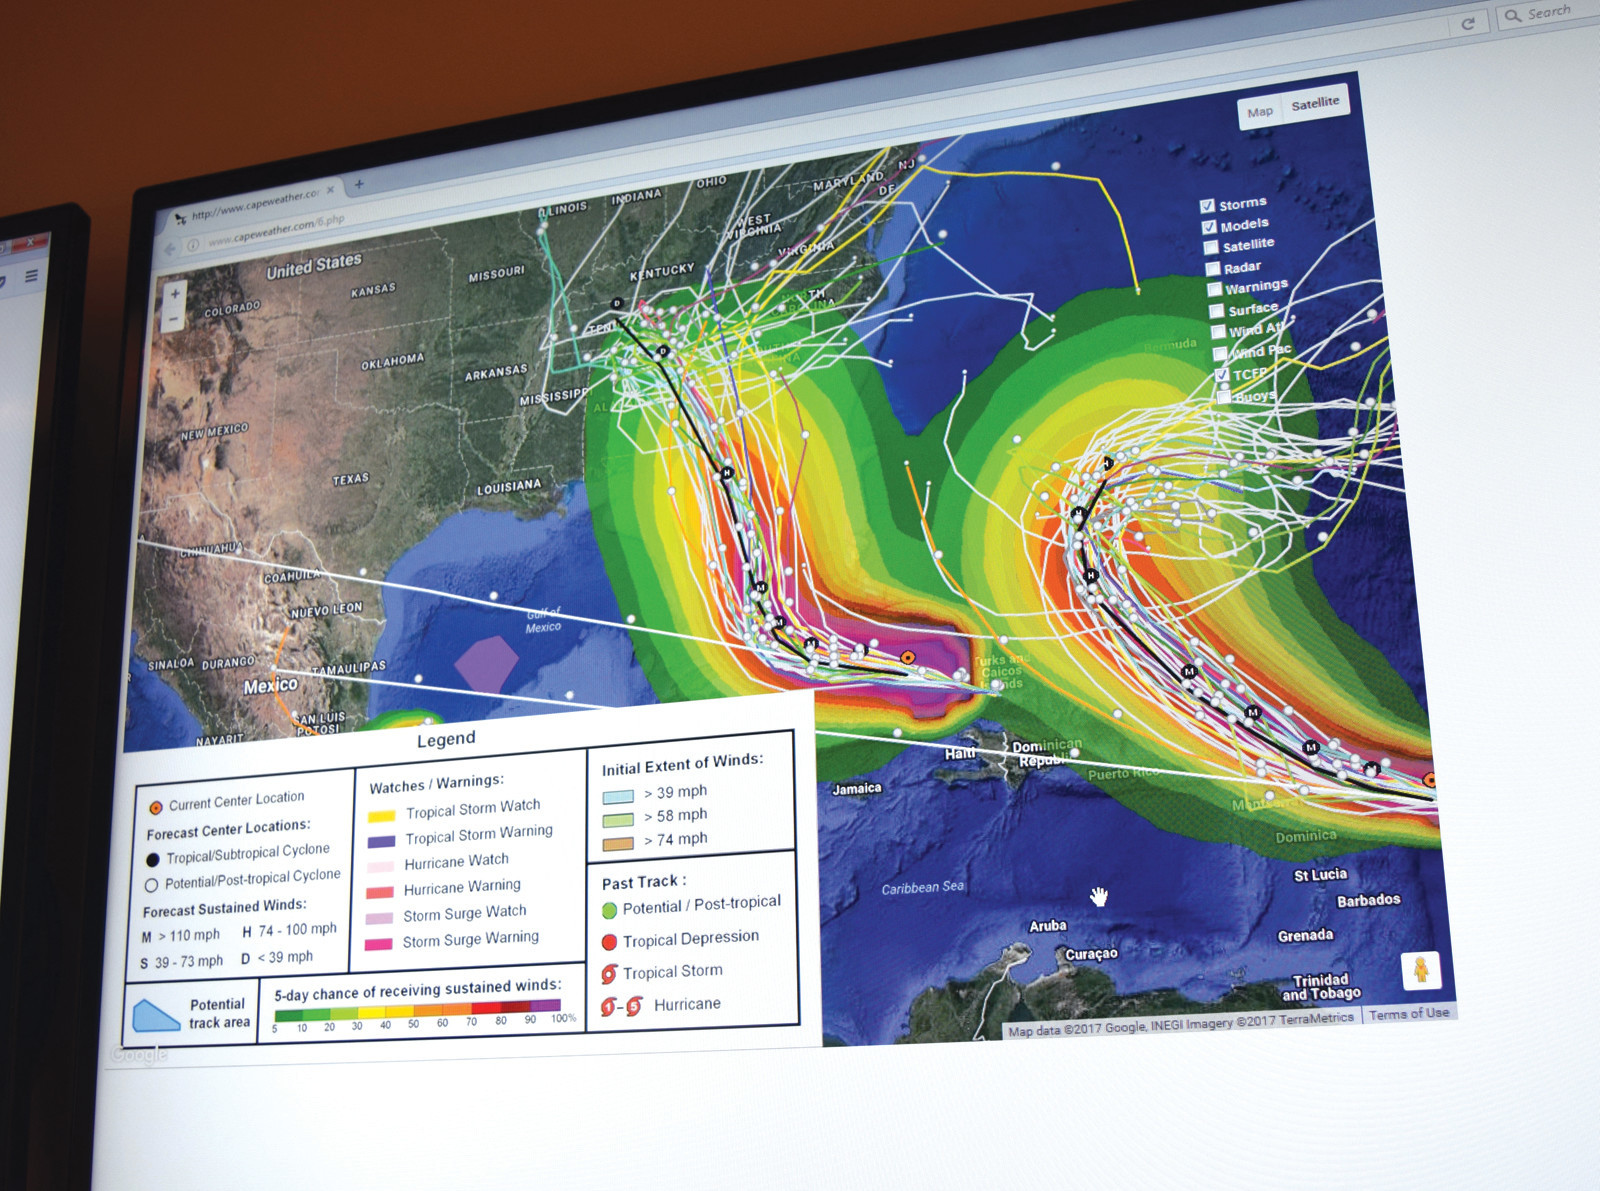 Some televisions at RIEMA had images featuring the tracks of Hurricanes Irma (left) and Jose (right).